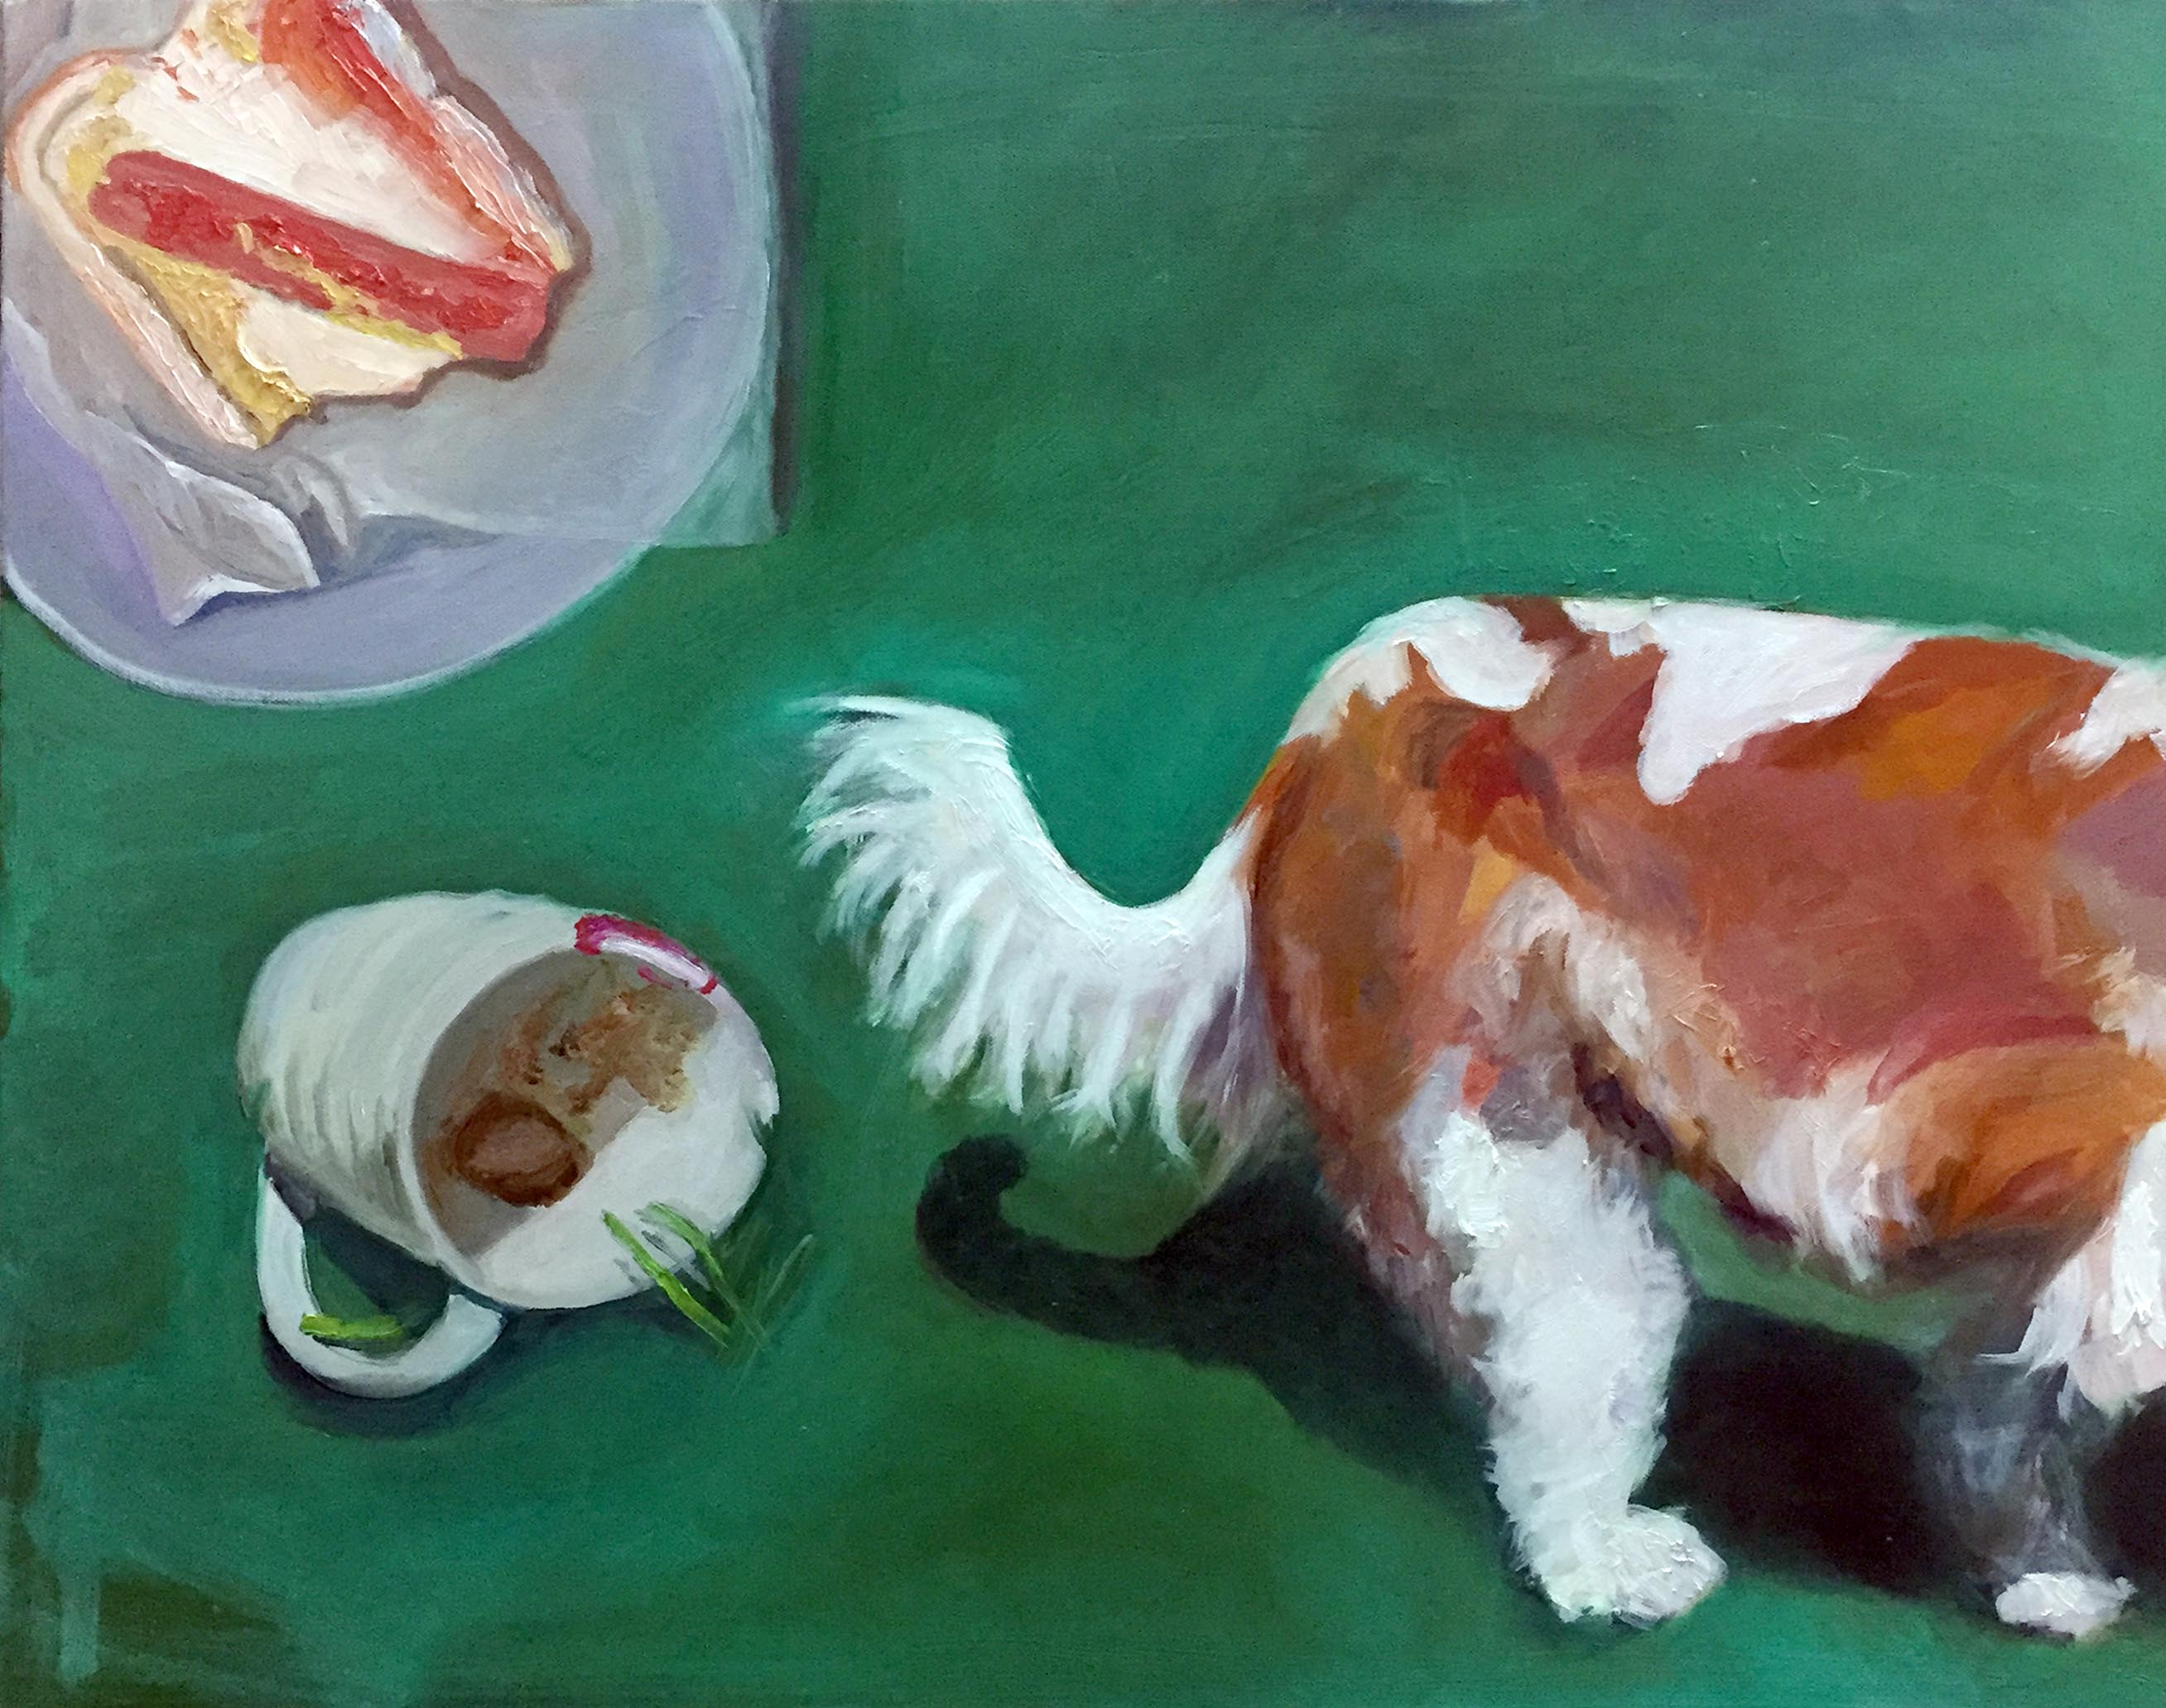 Wag the Dog by Jessica Alazraki, 2016, Oil on Canvas, 28x28 inches, for sale